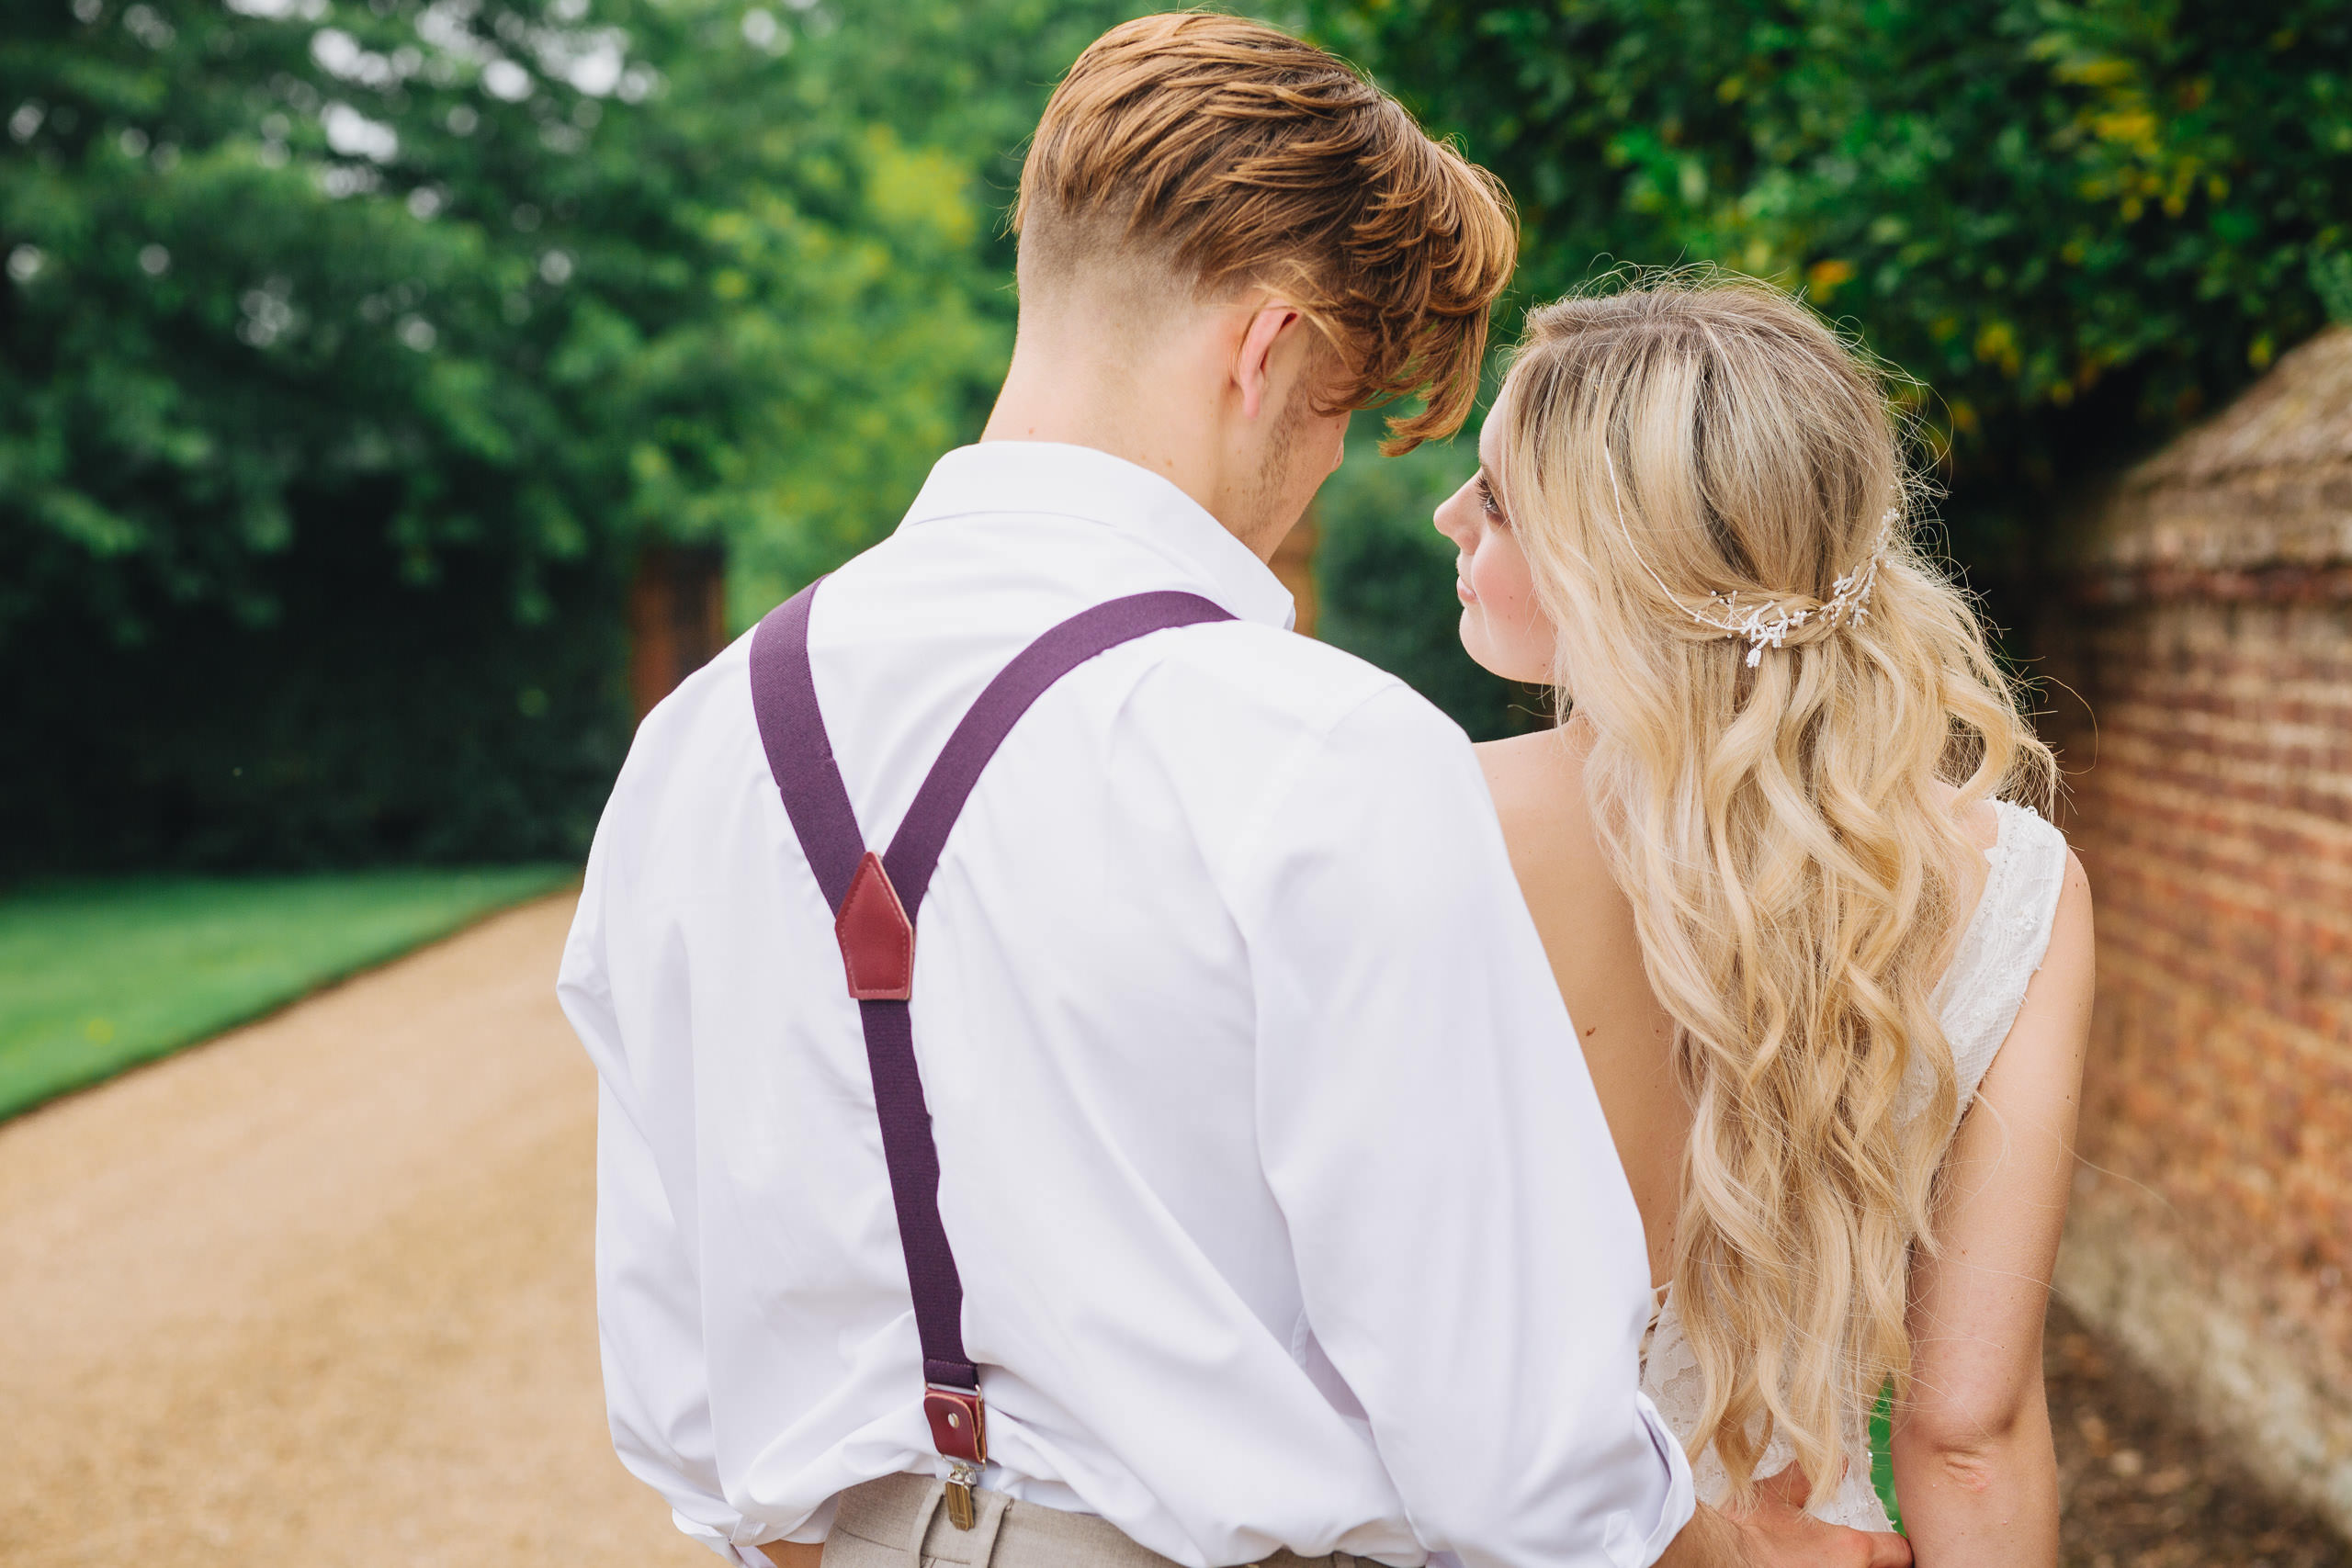 lillibrooke manor wedding photographer